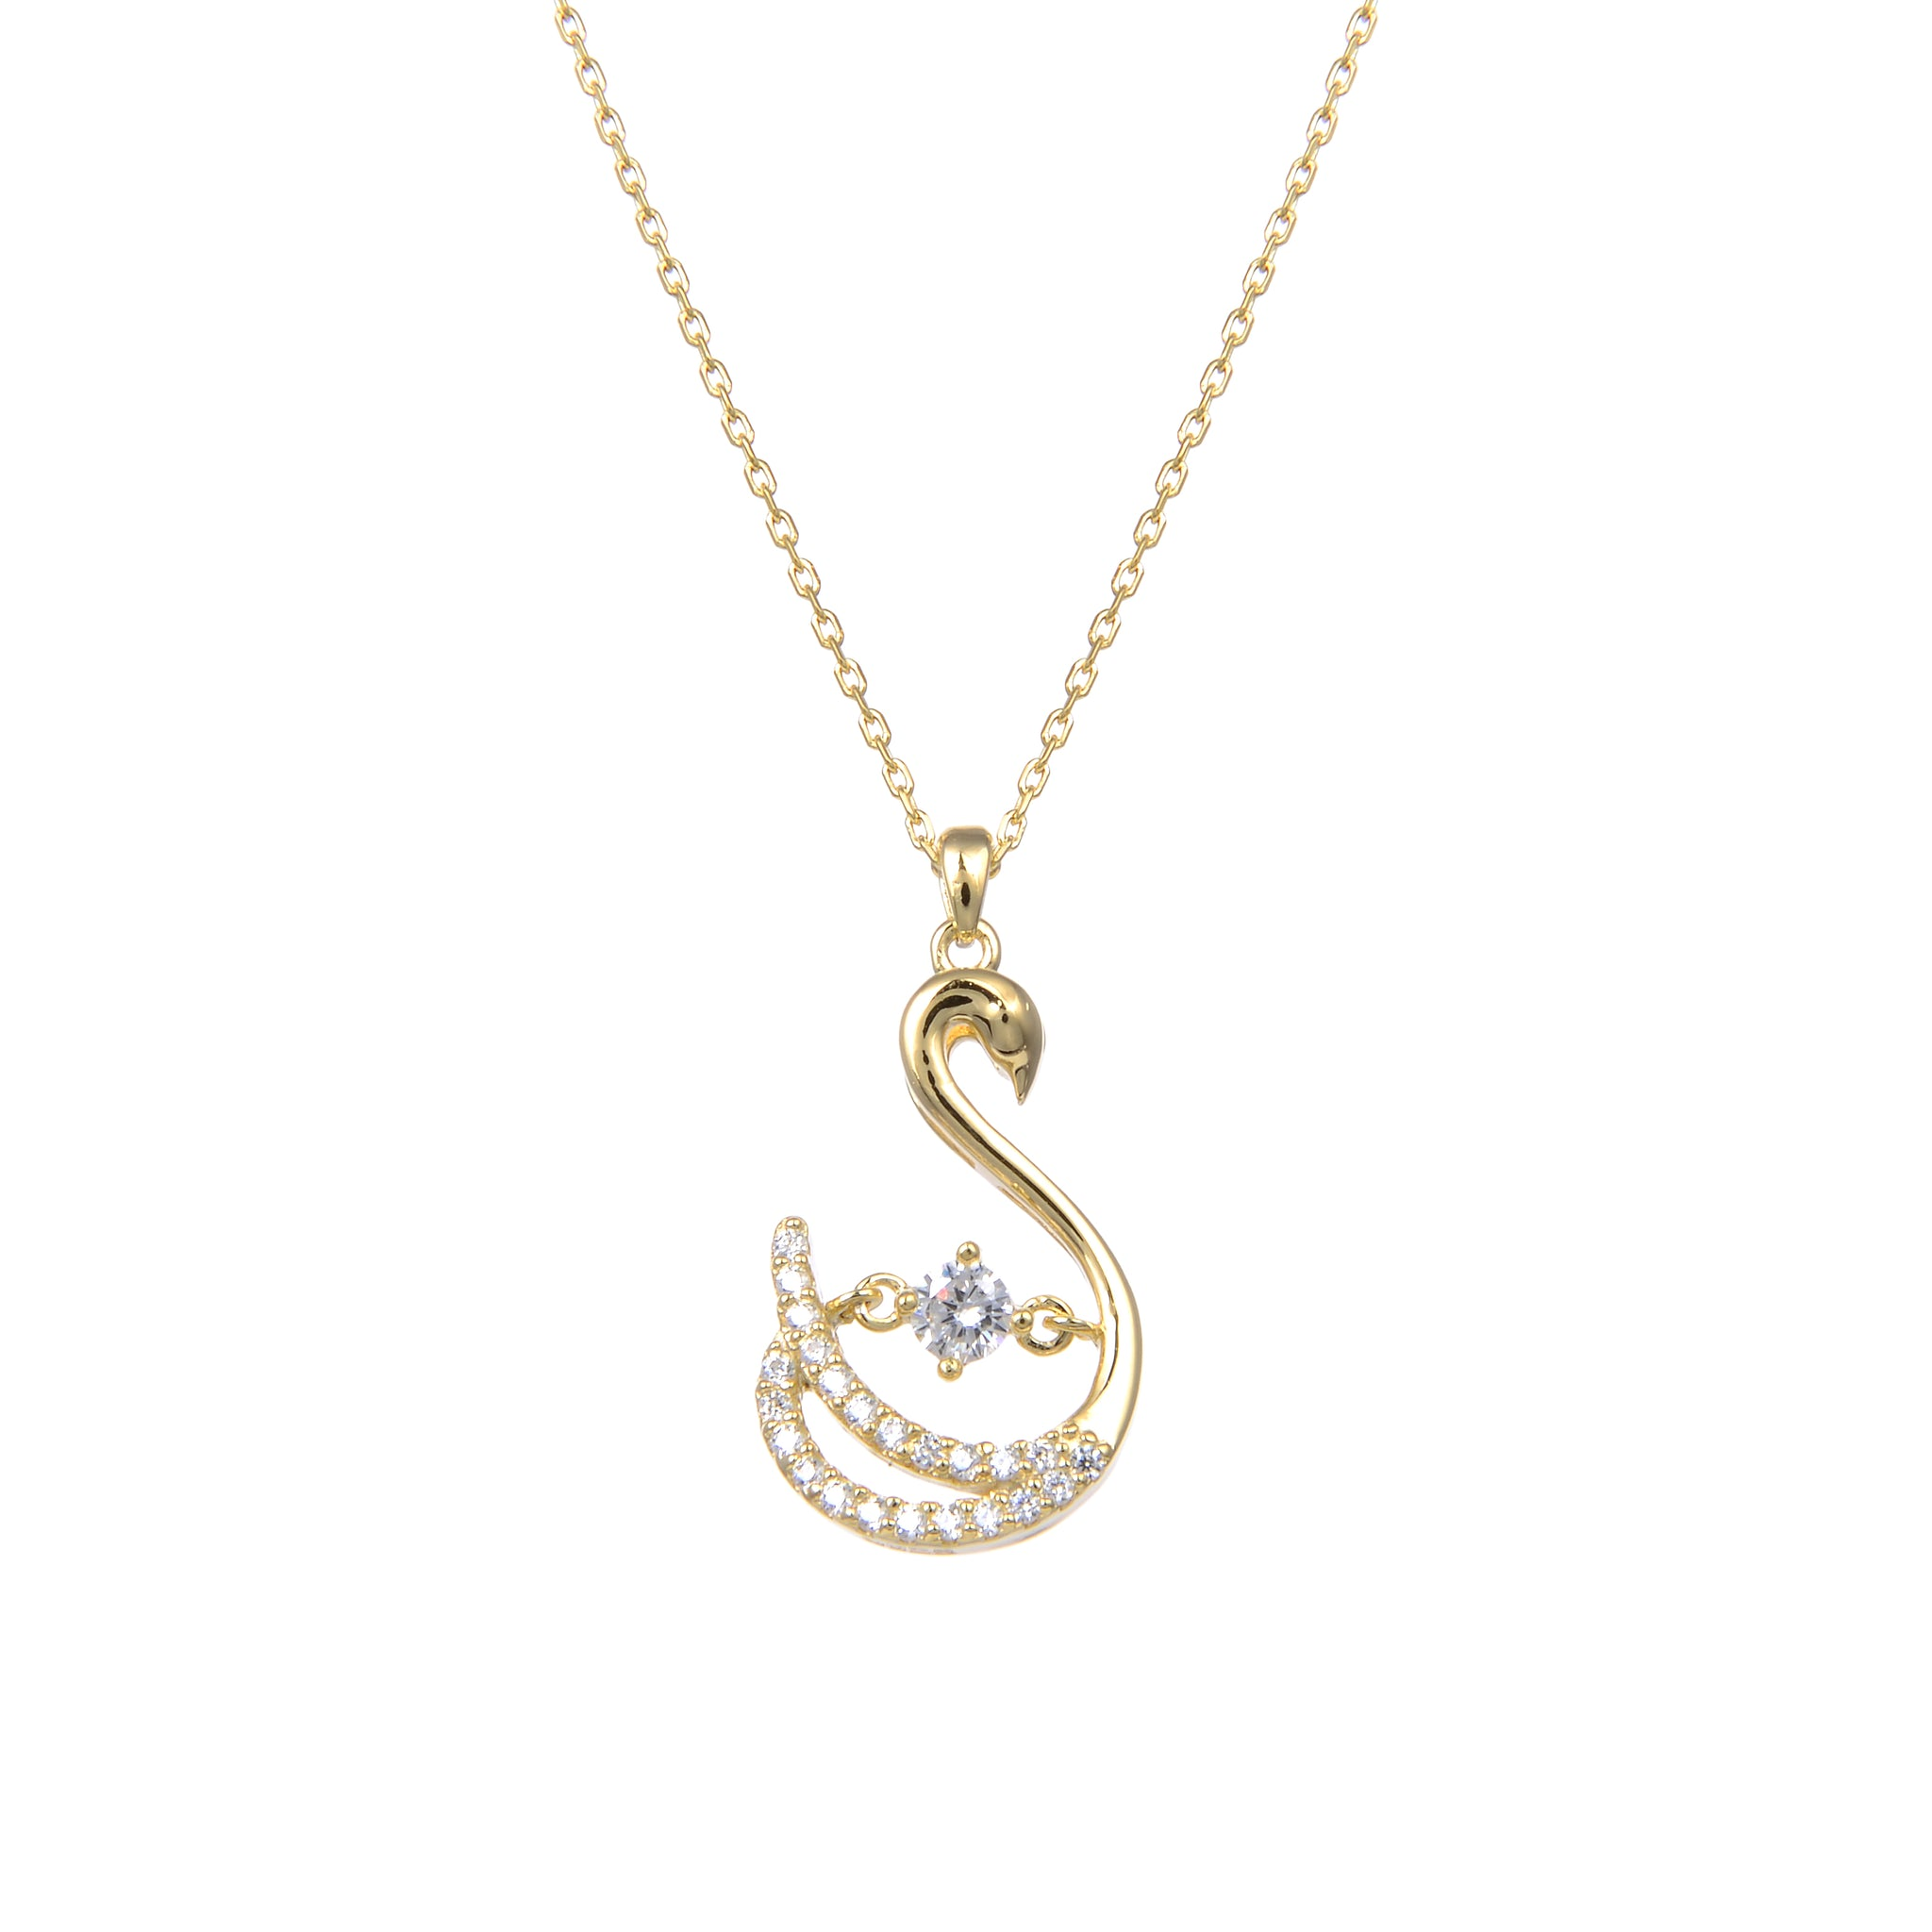 92.5 Sterling Silver CZ Cubic Zirconia Swan Shape Pendant with Sterling Silver Necklace Chain